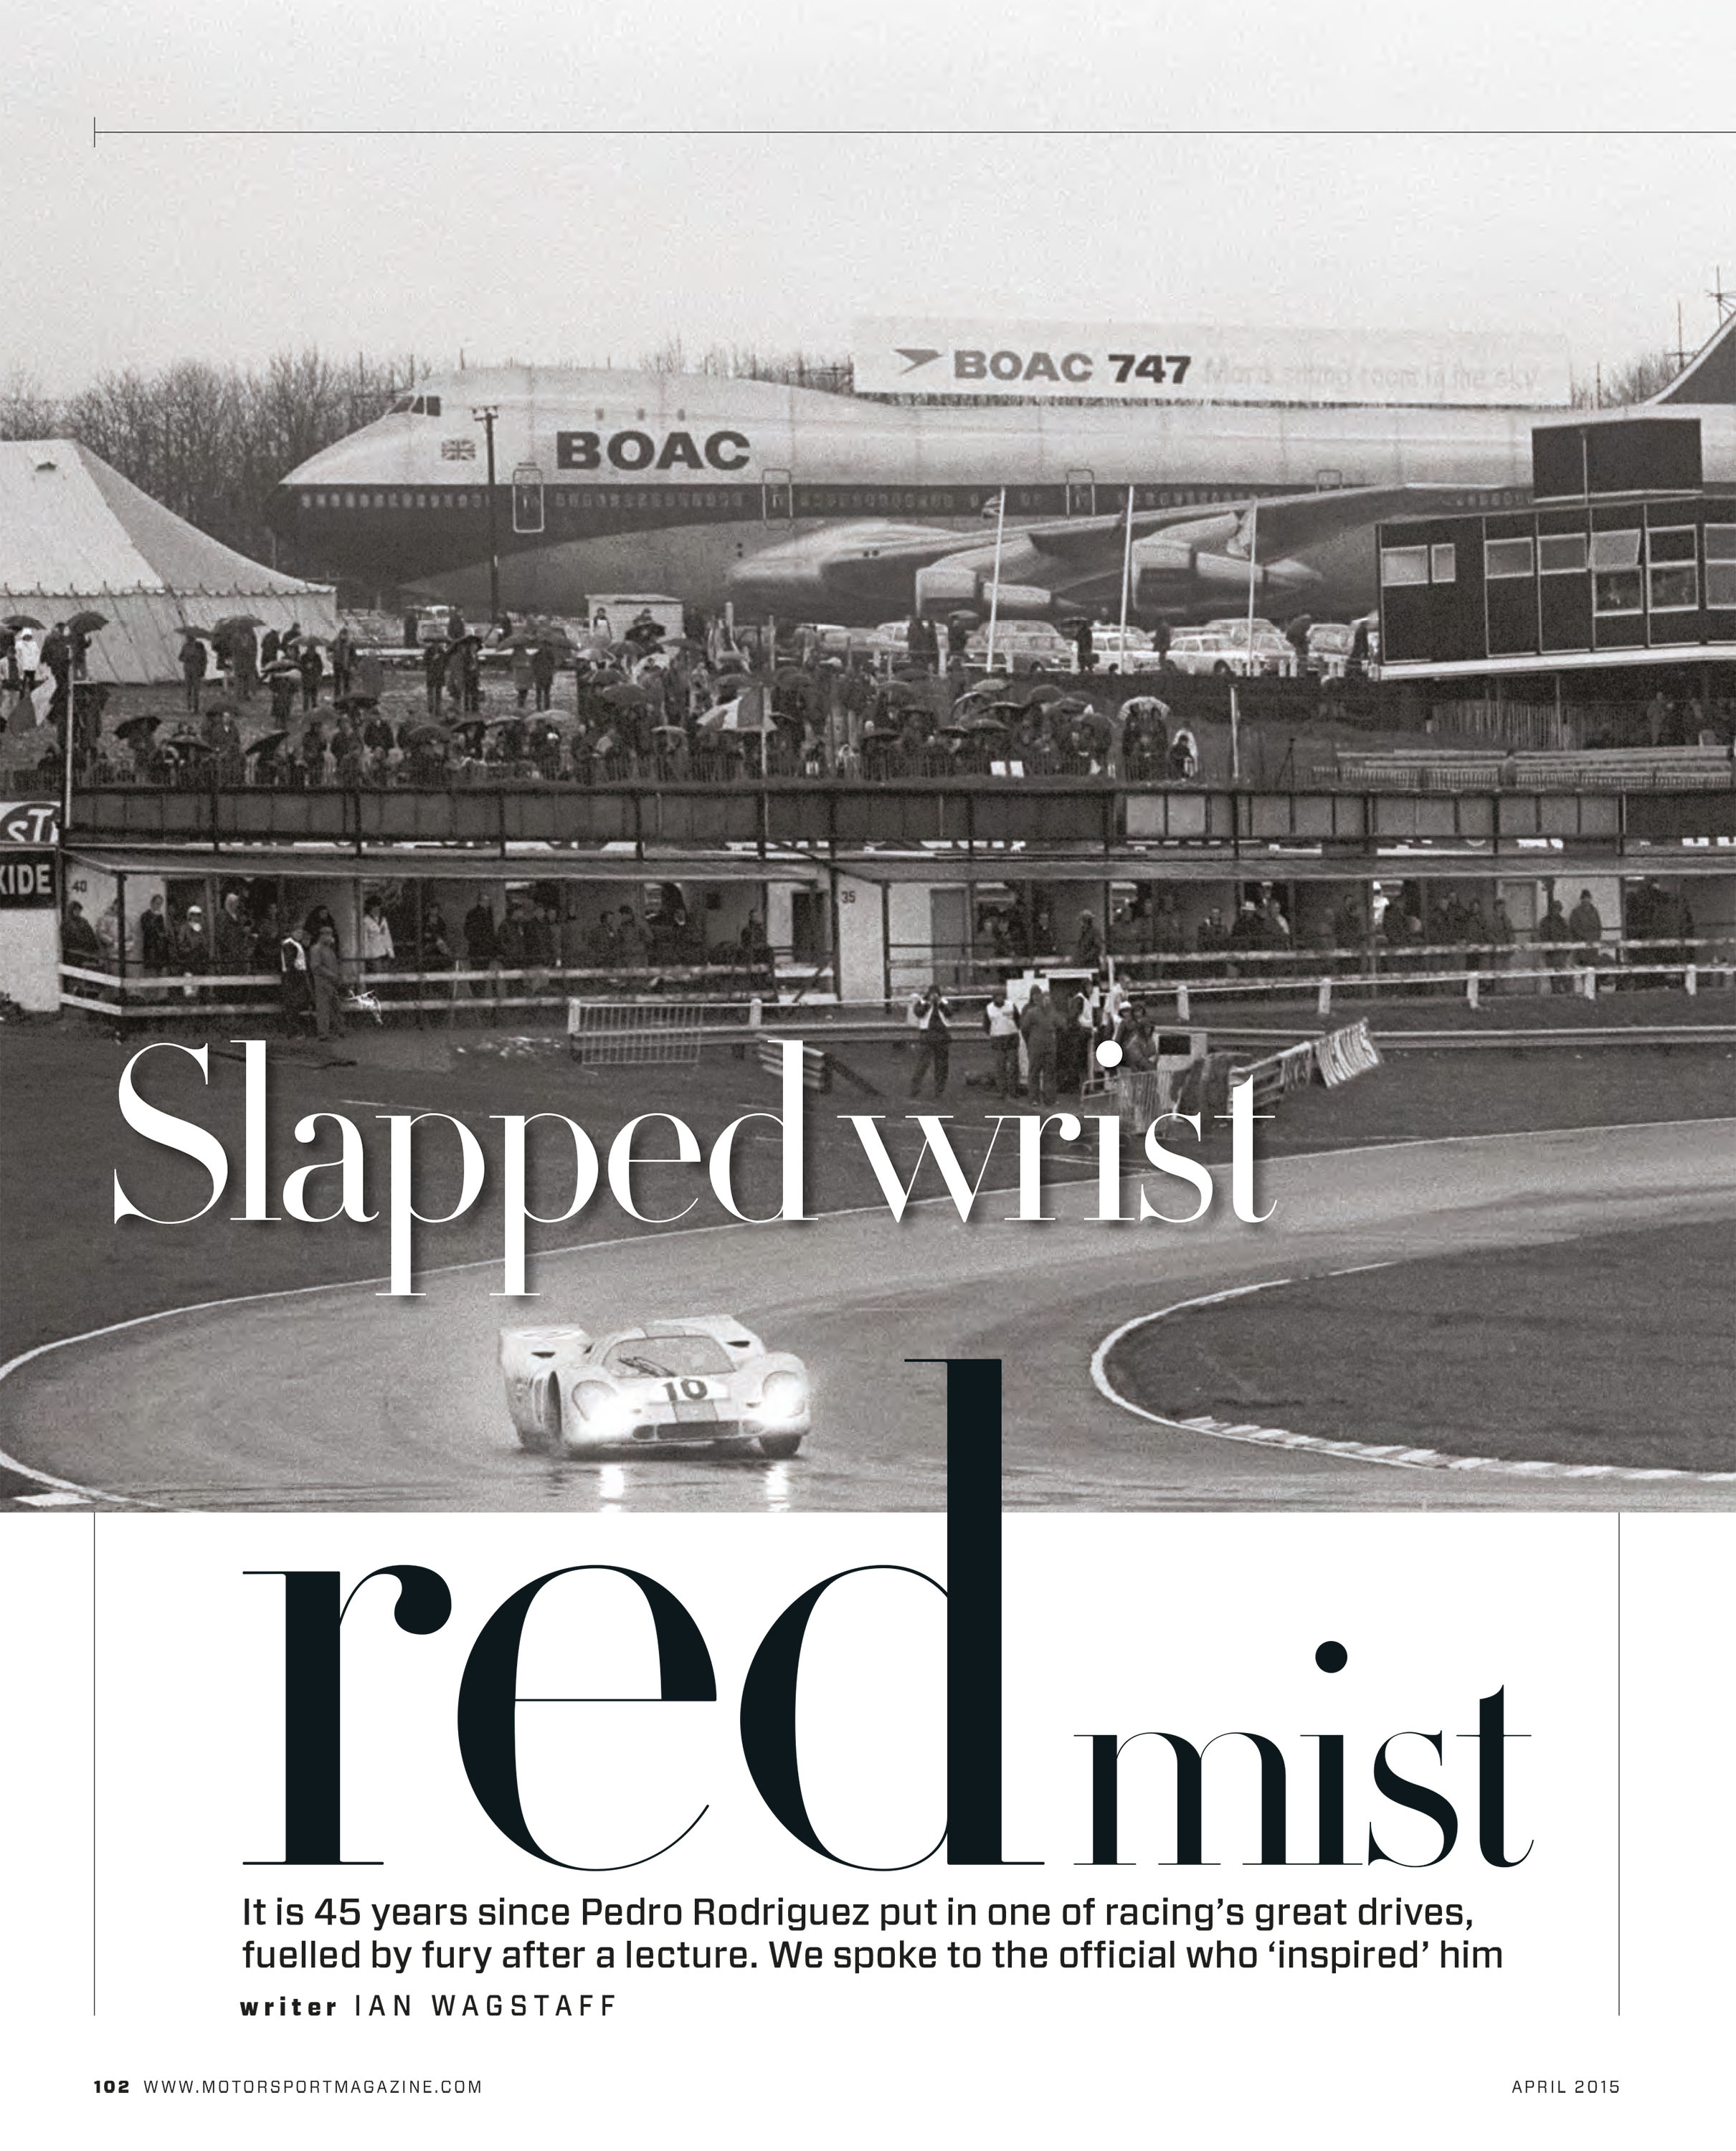 Slapped wrist, red mist image